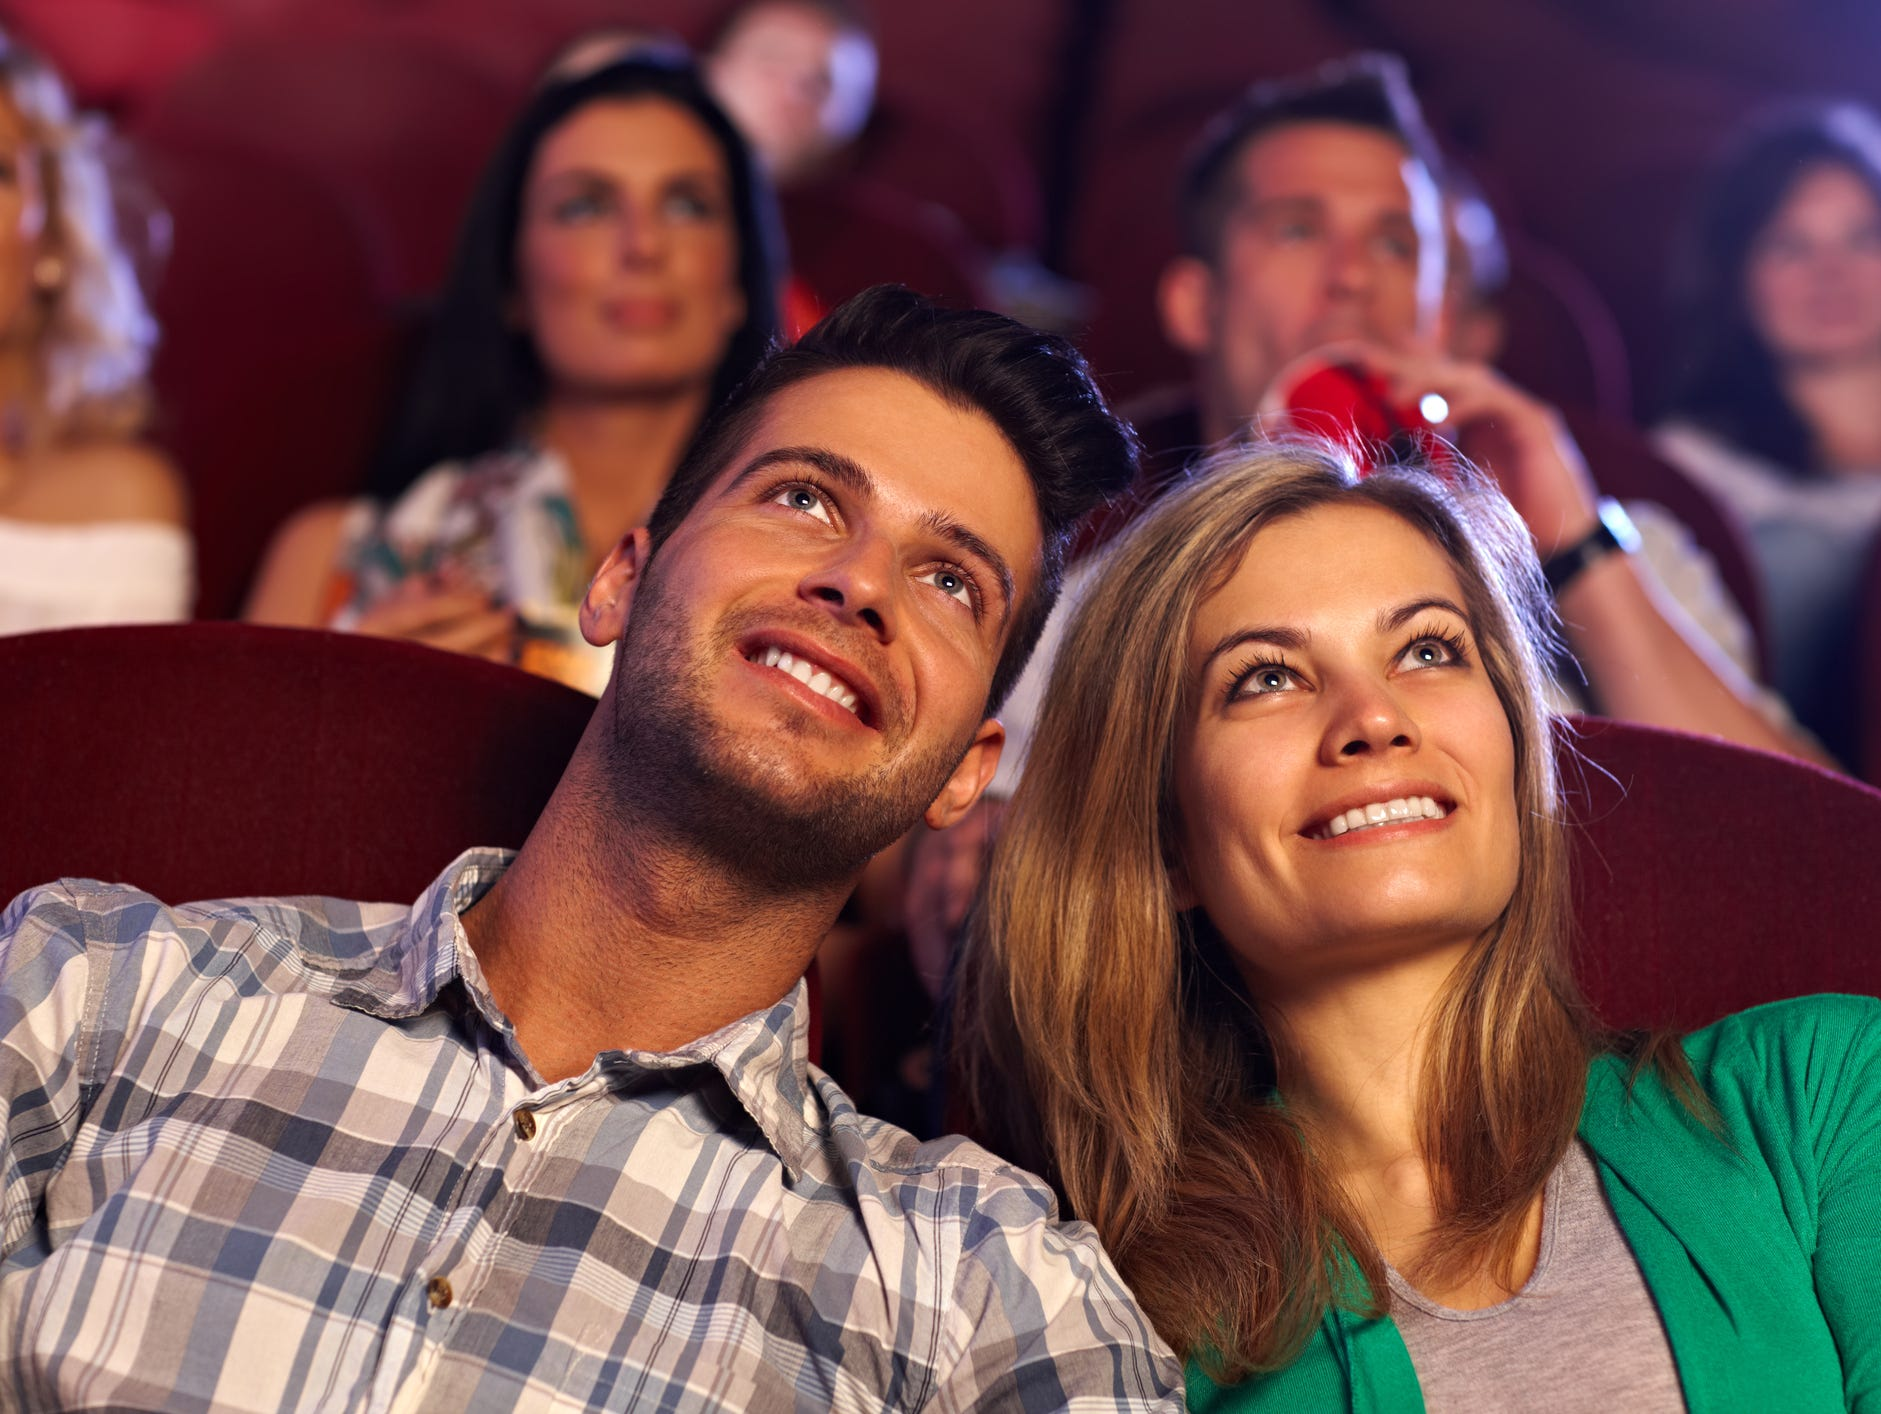 Need a date night? Have a movie you want to see?